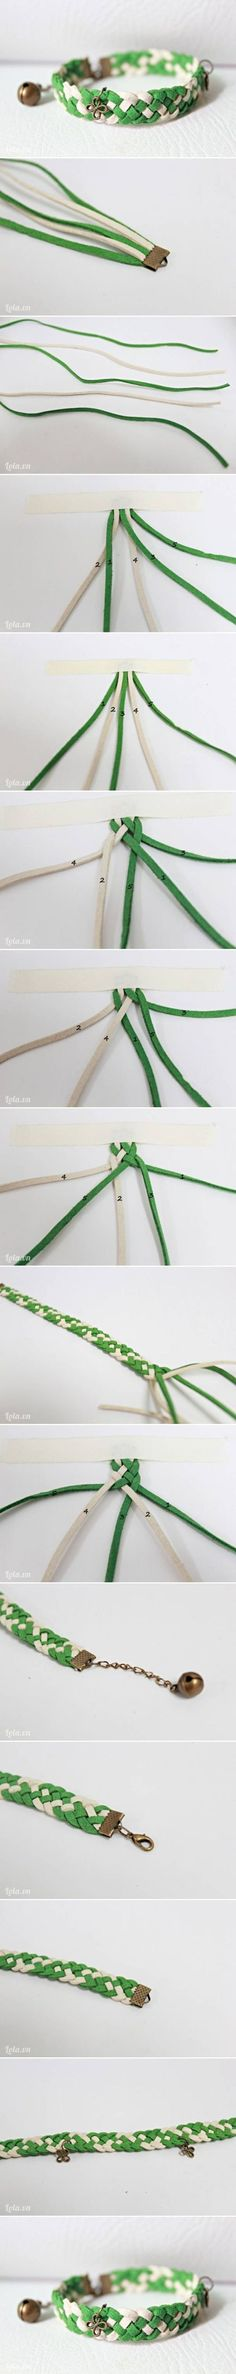 DIY Nice Spring Wristband DIY Projects / UsefulDIY.com